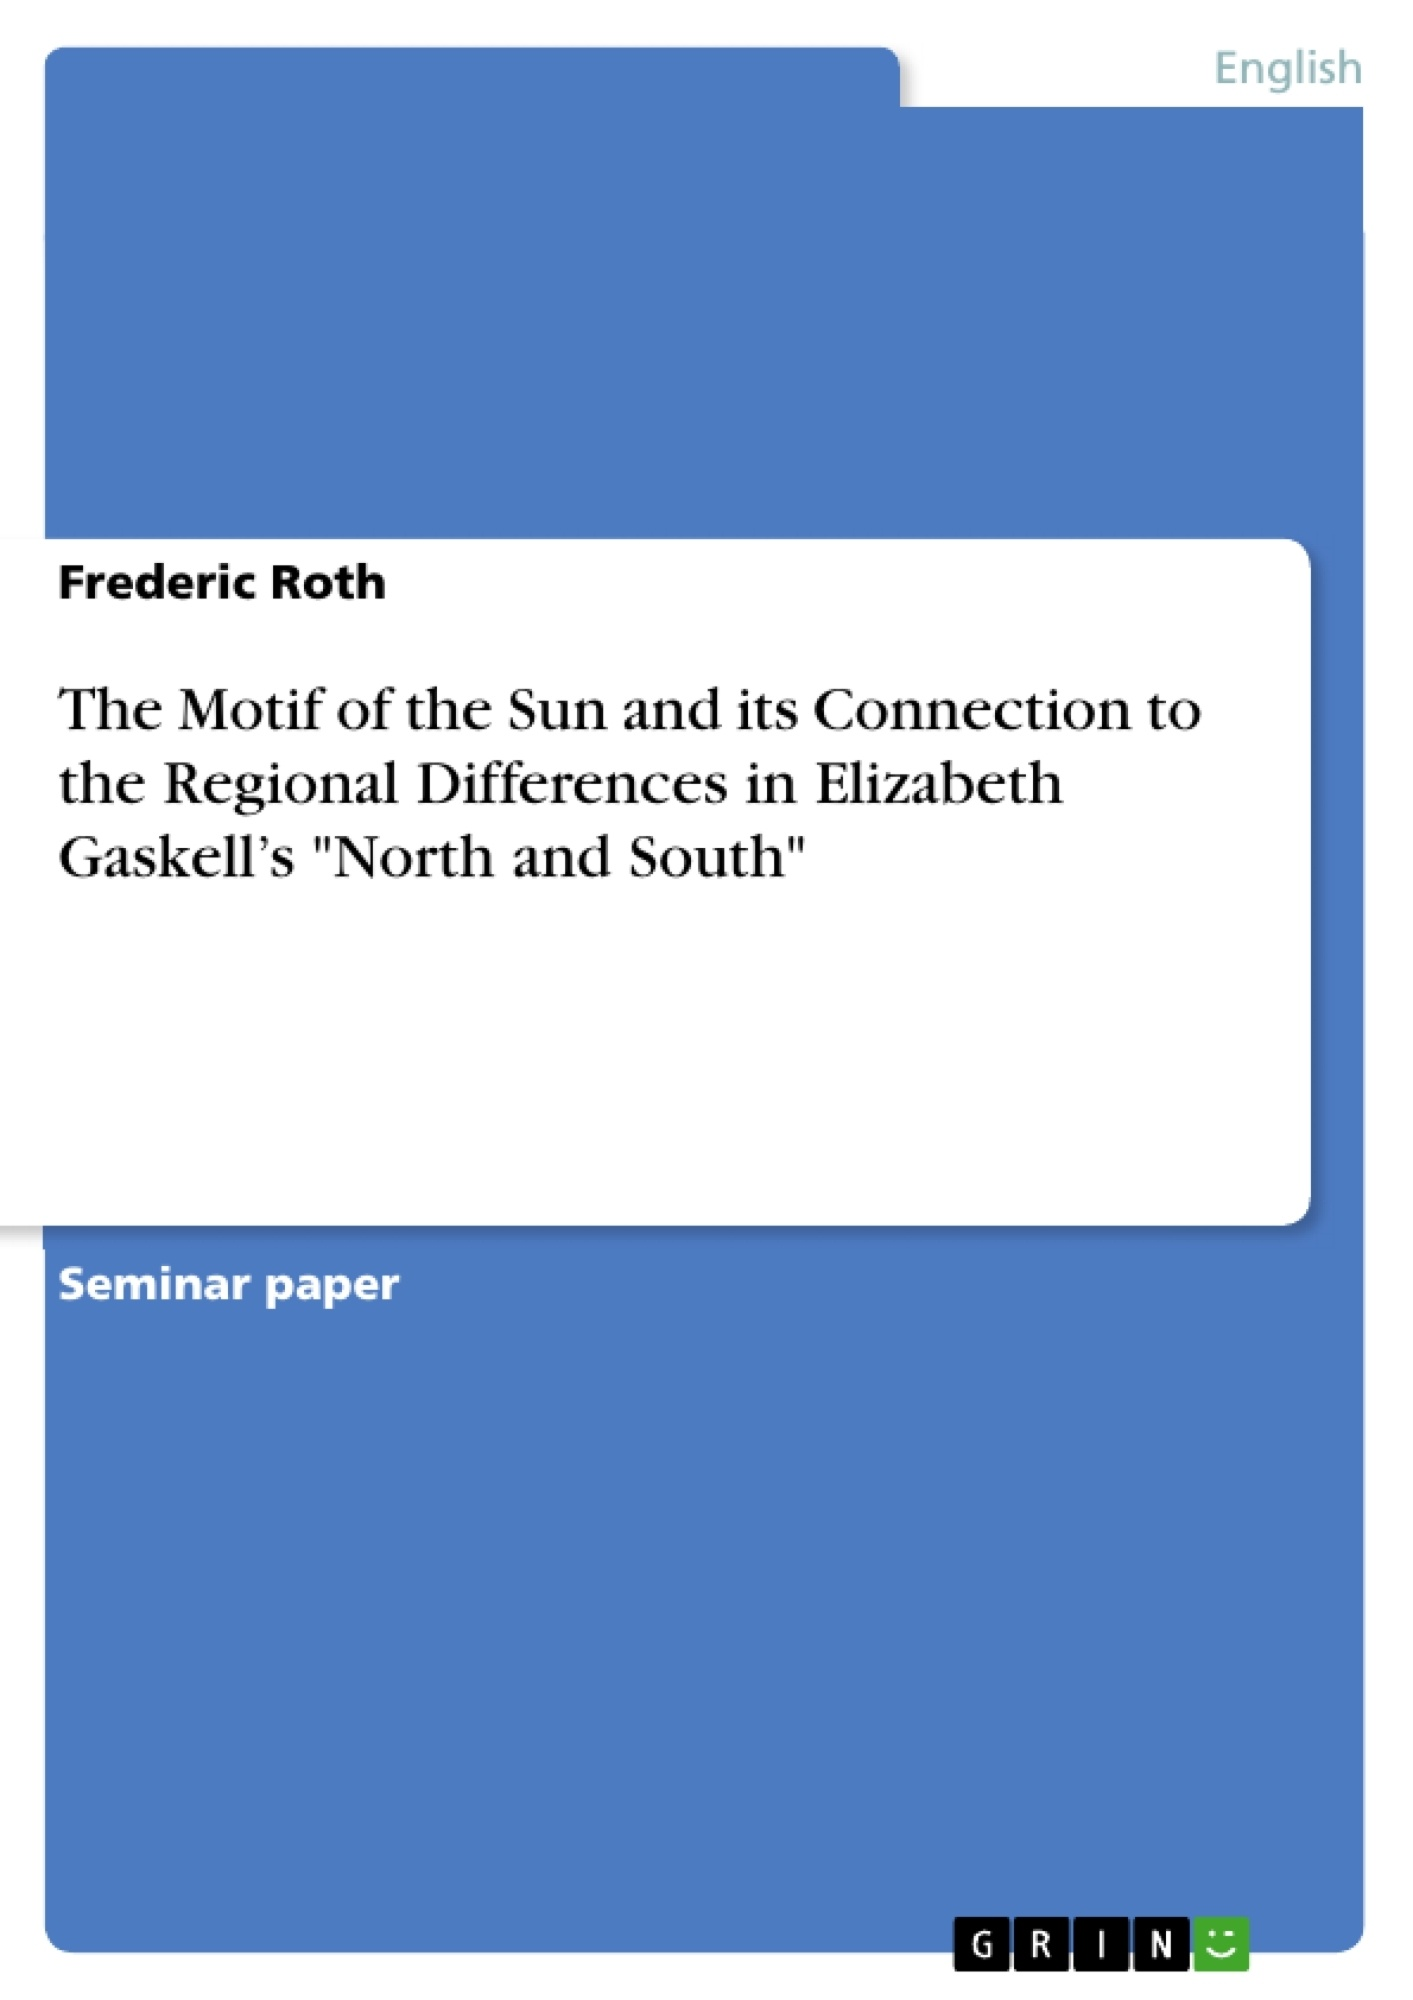 """Title: The Motif of the Sun and its Connection to the Regional Differences  in Elizabeth Gaskell's """"North and South"""""""